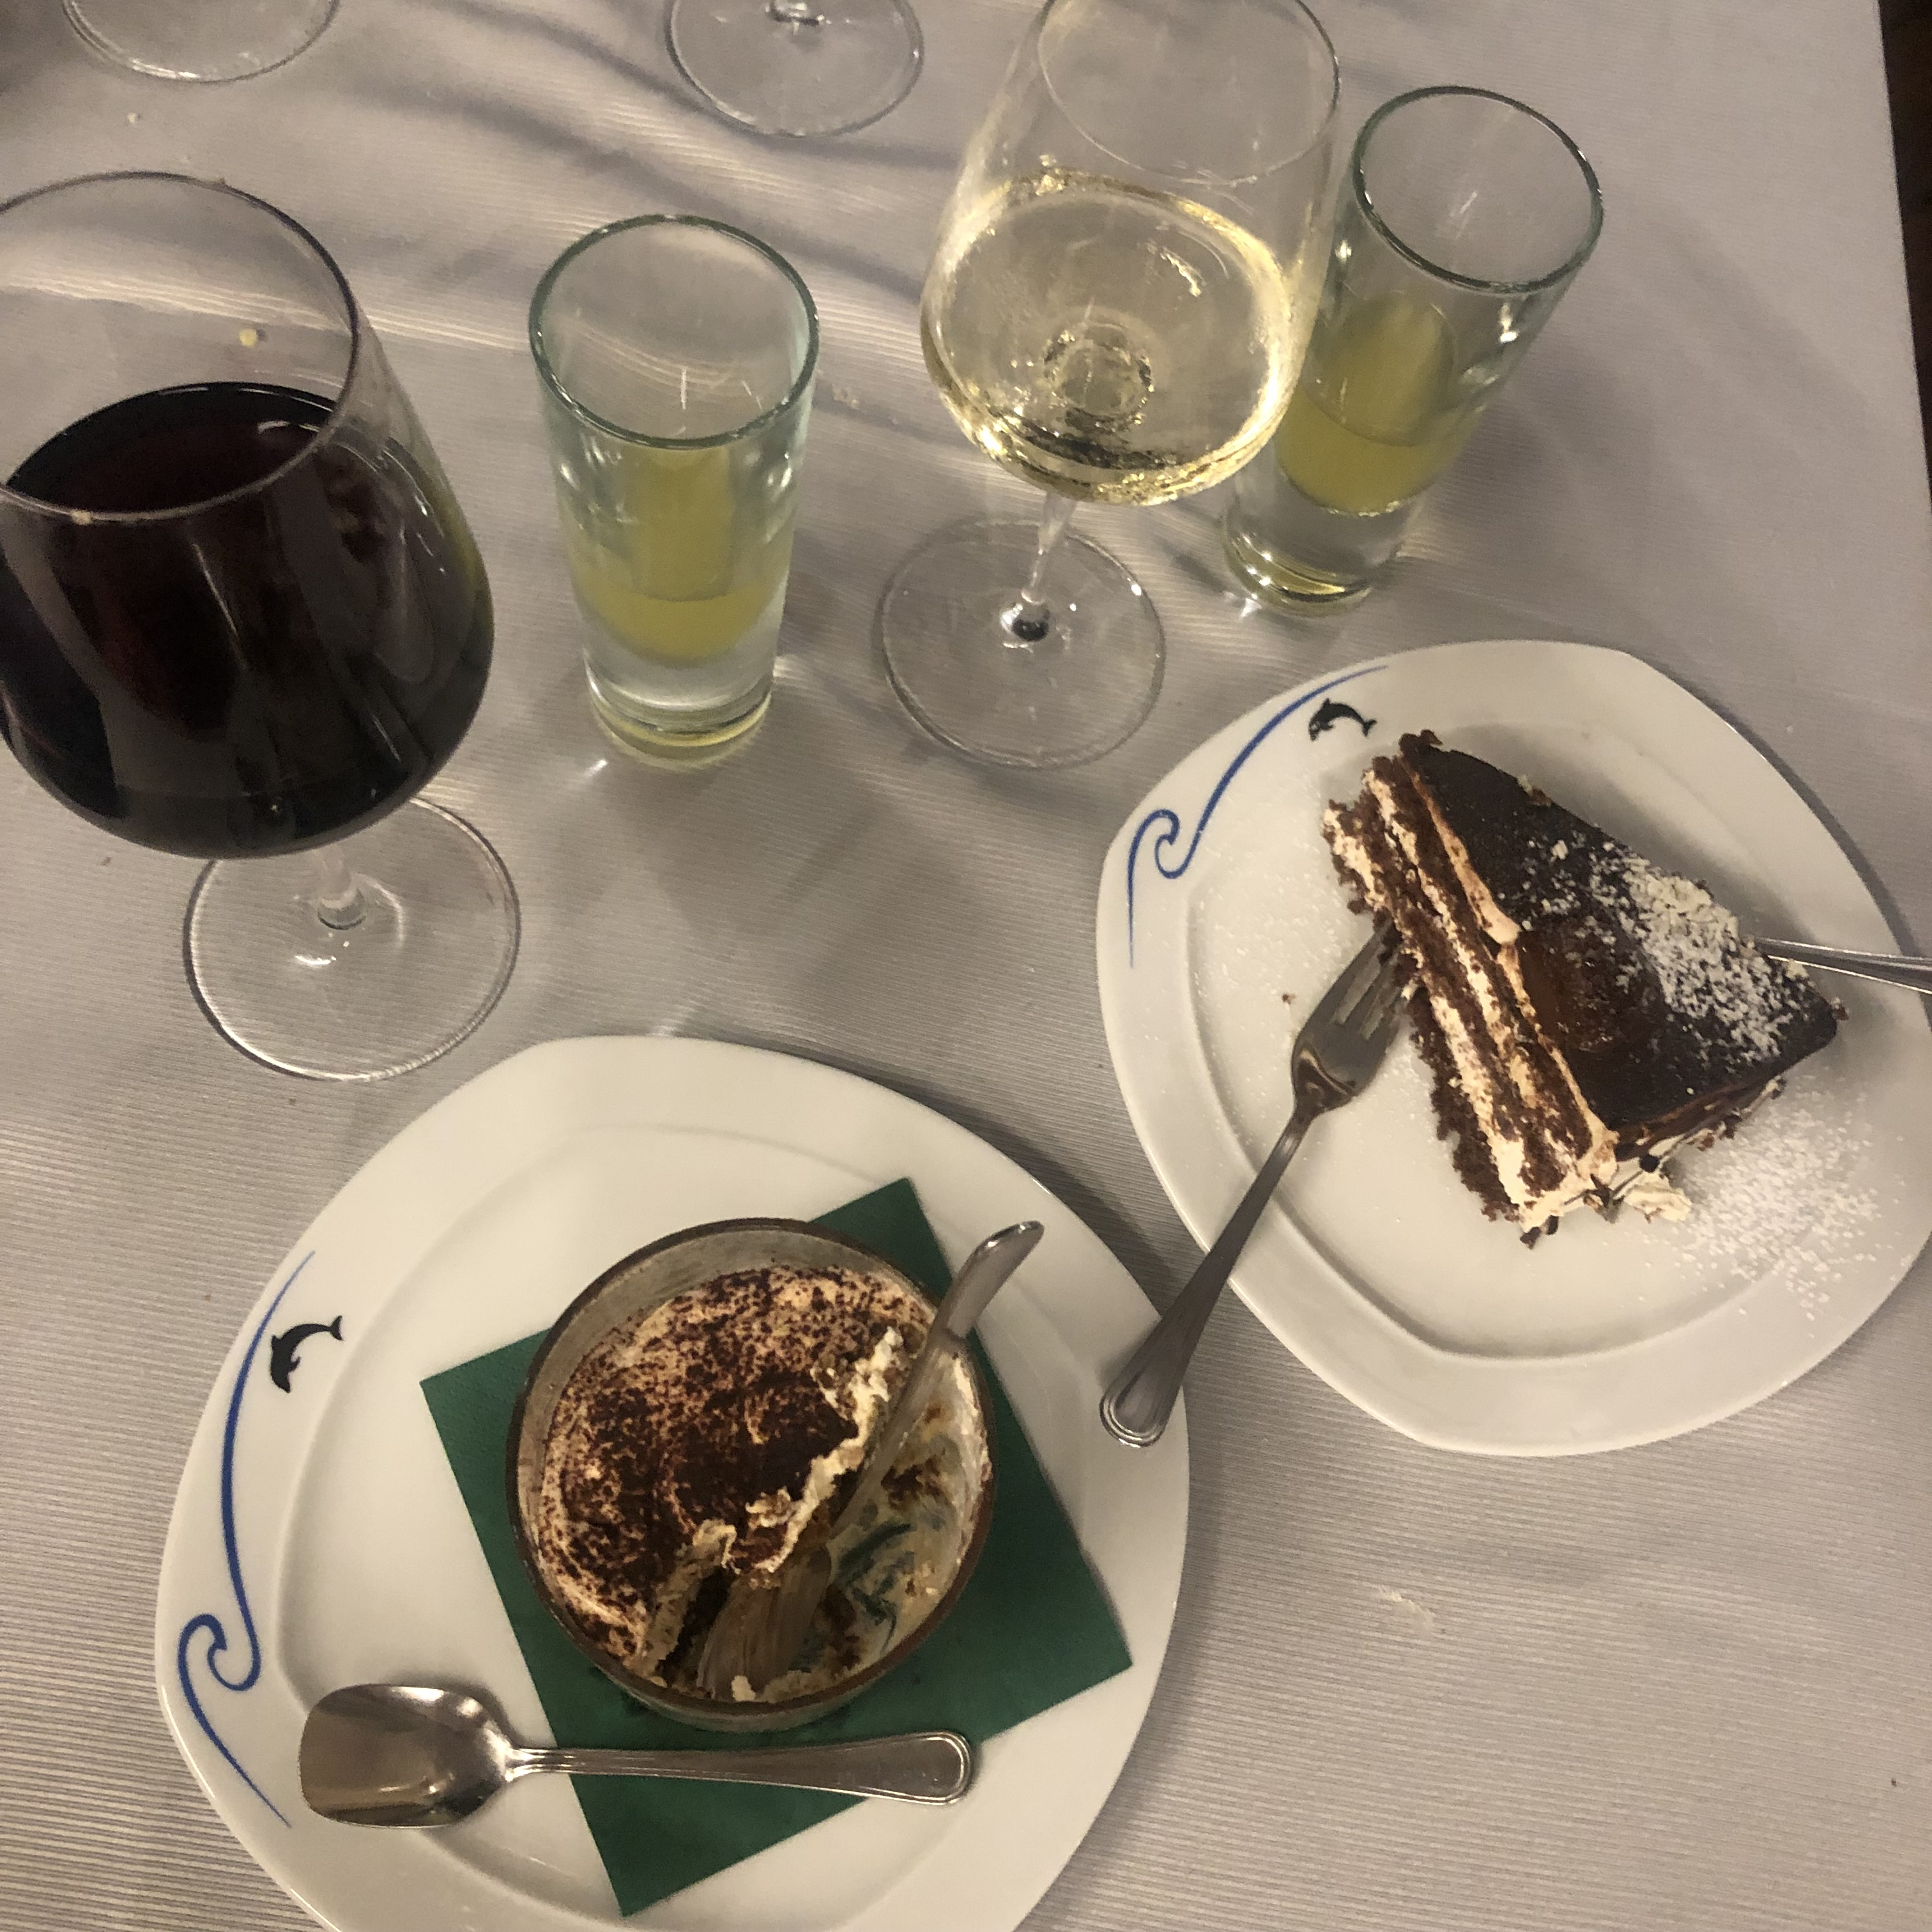 sorrento tiramisu and limoncello.jpeg